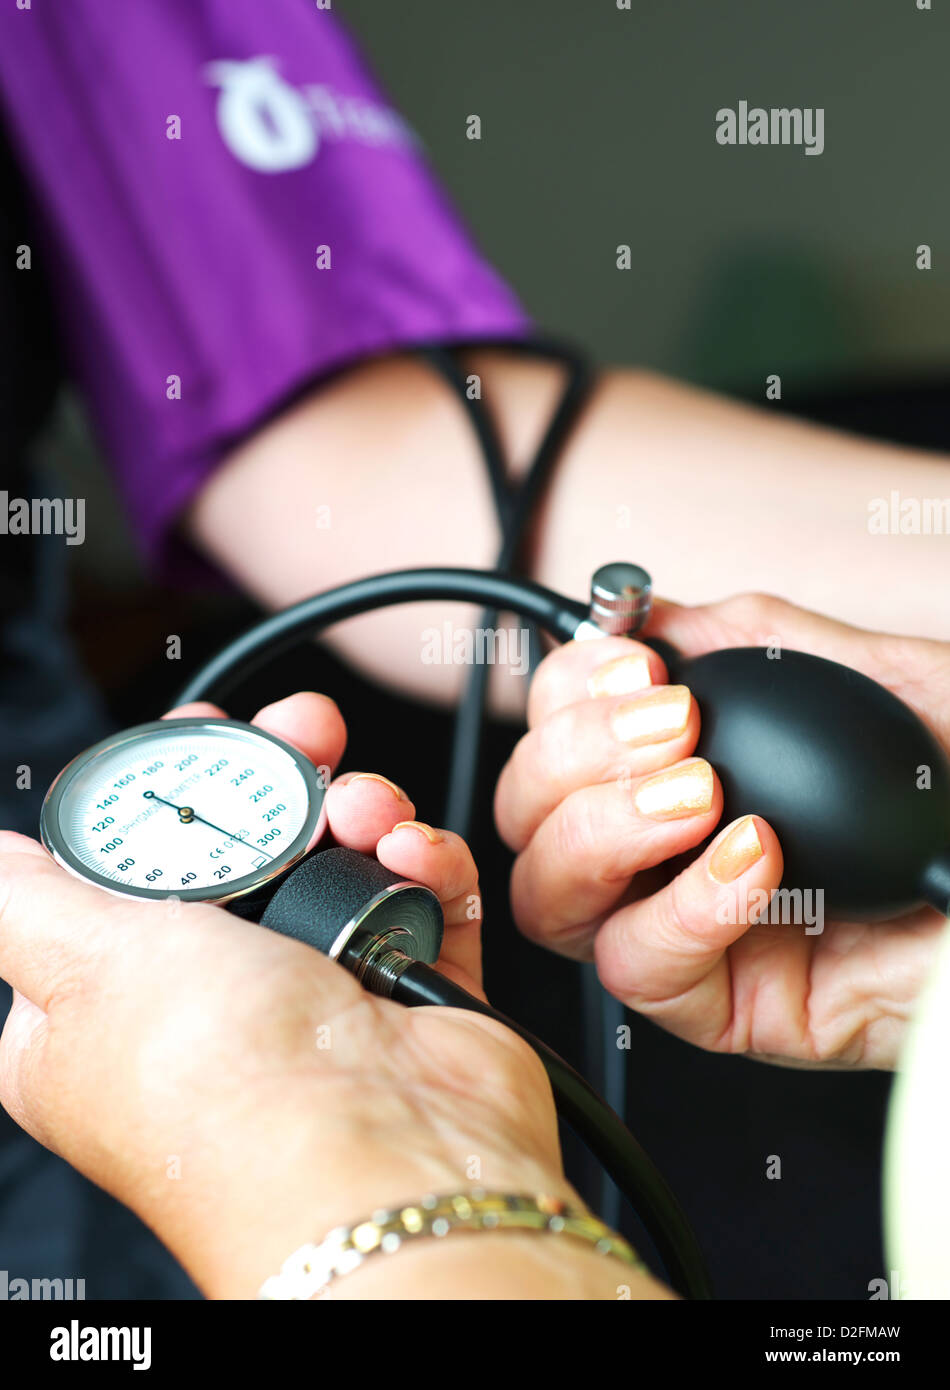 Female blood pressure being taken in UK GP Health Centre by female doctor - Stock Image